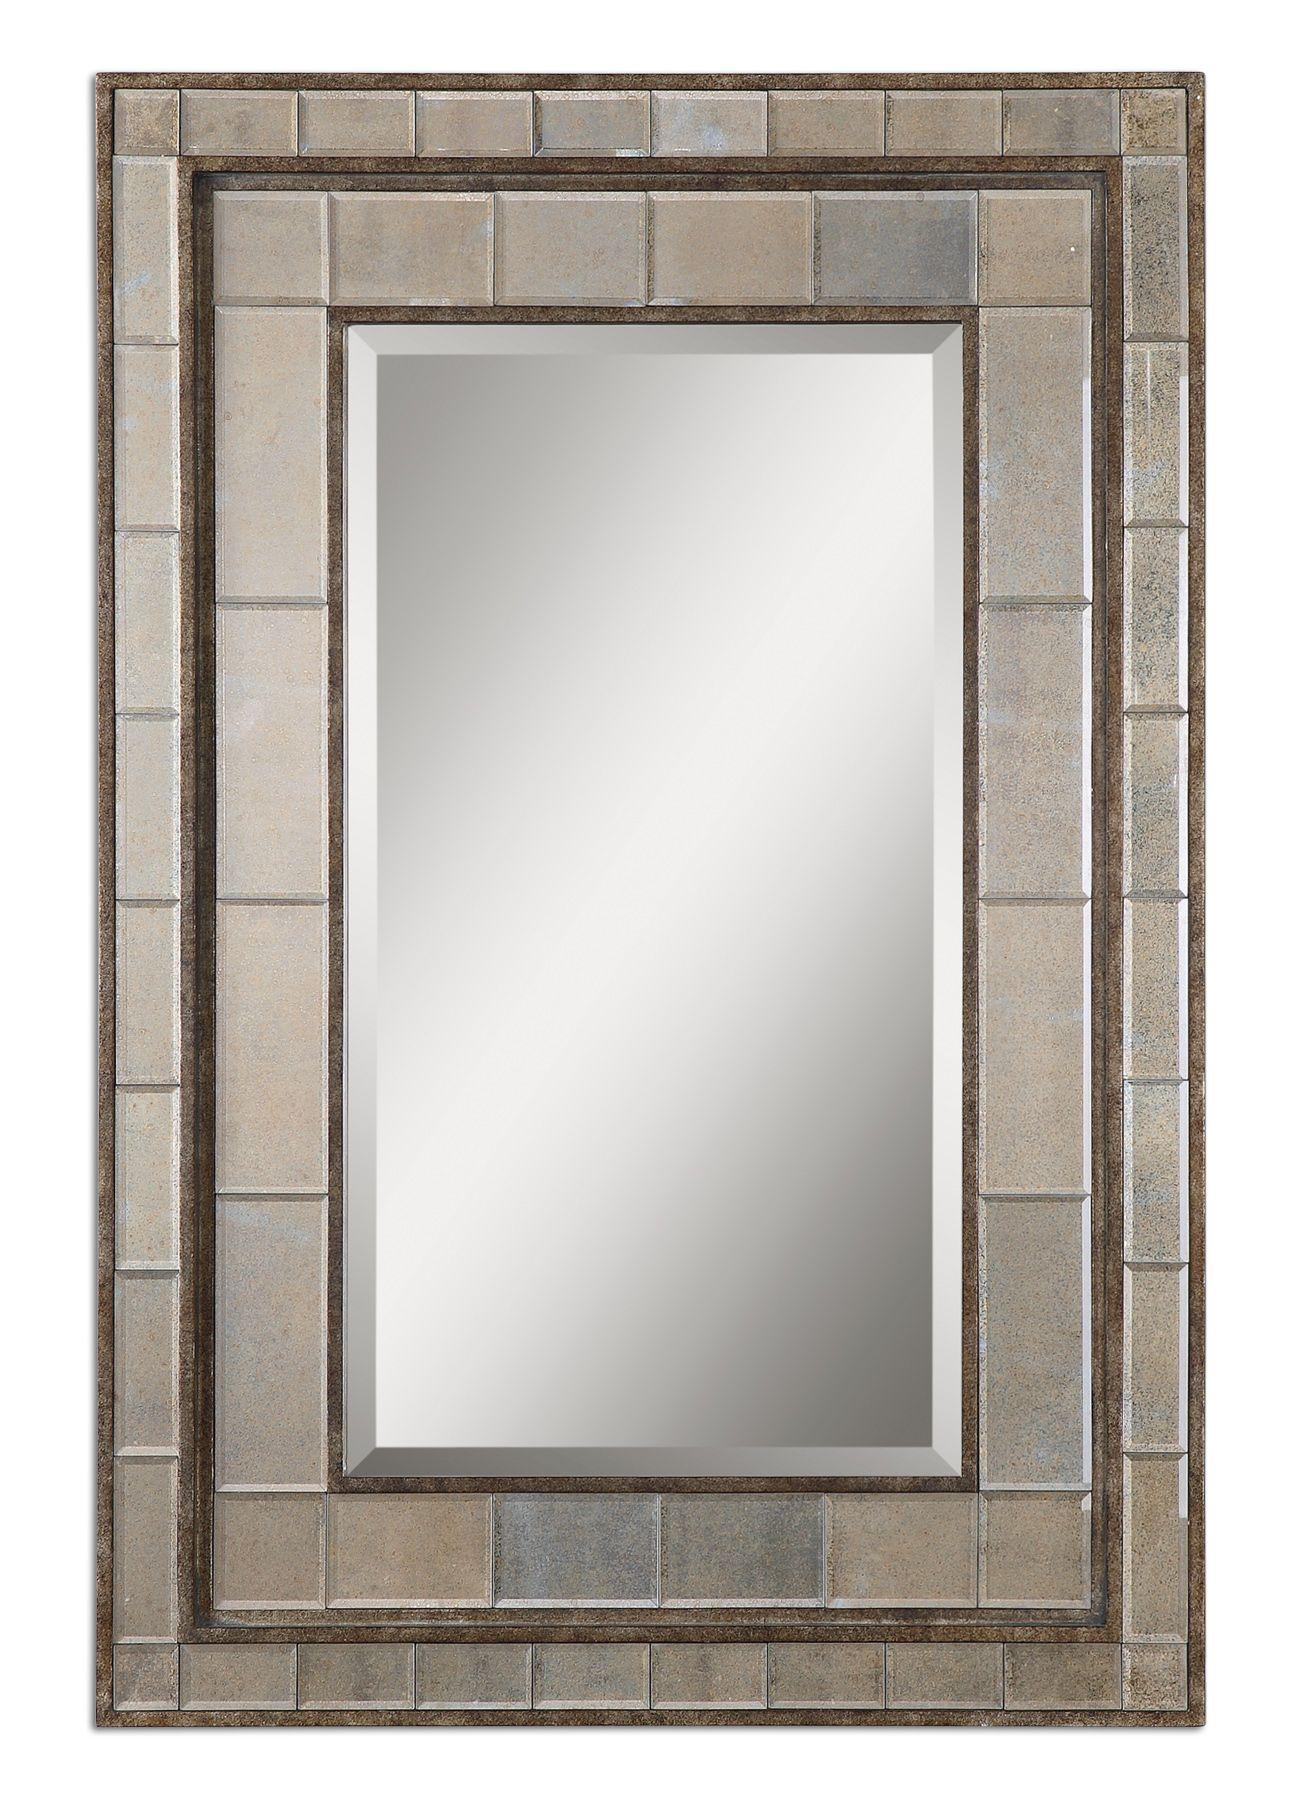 Uttermost Mirrors Almont Mirror - Item Number: 08099